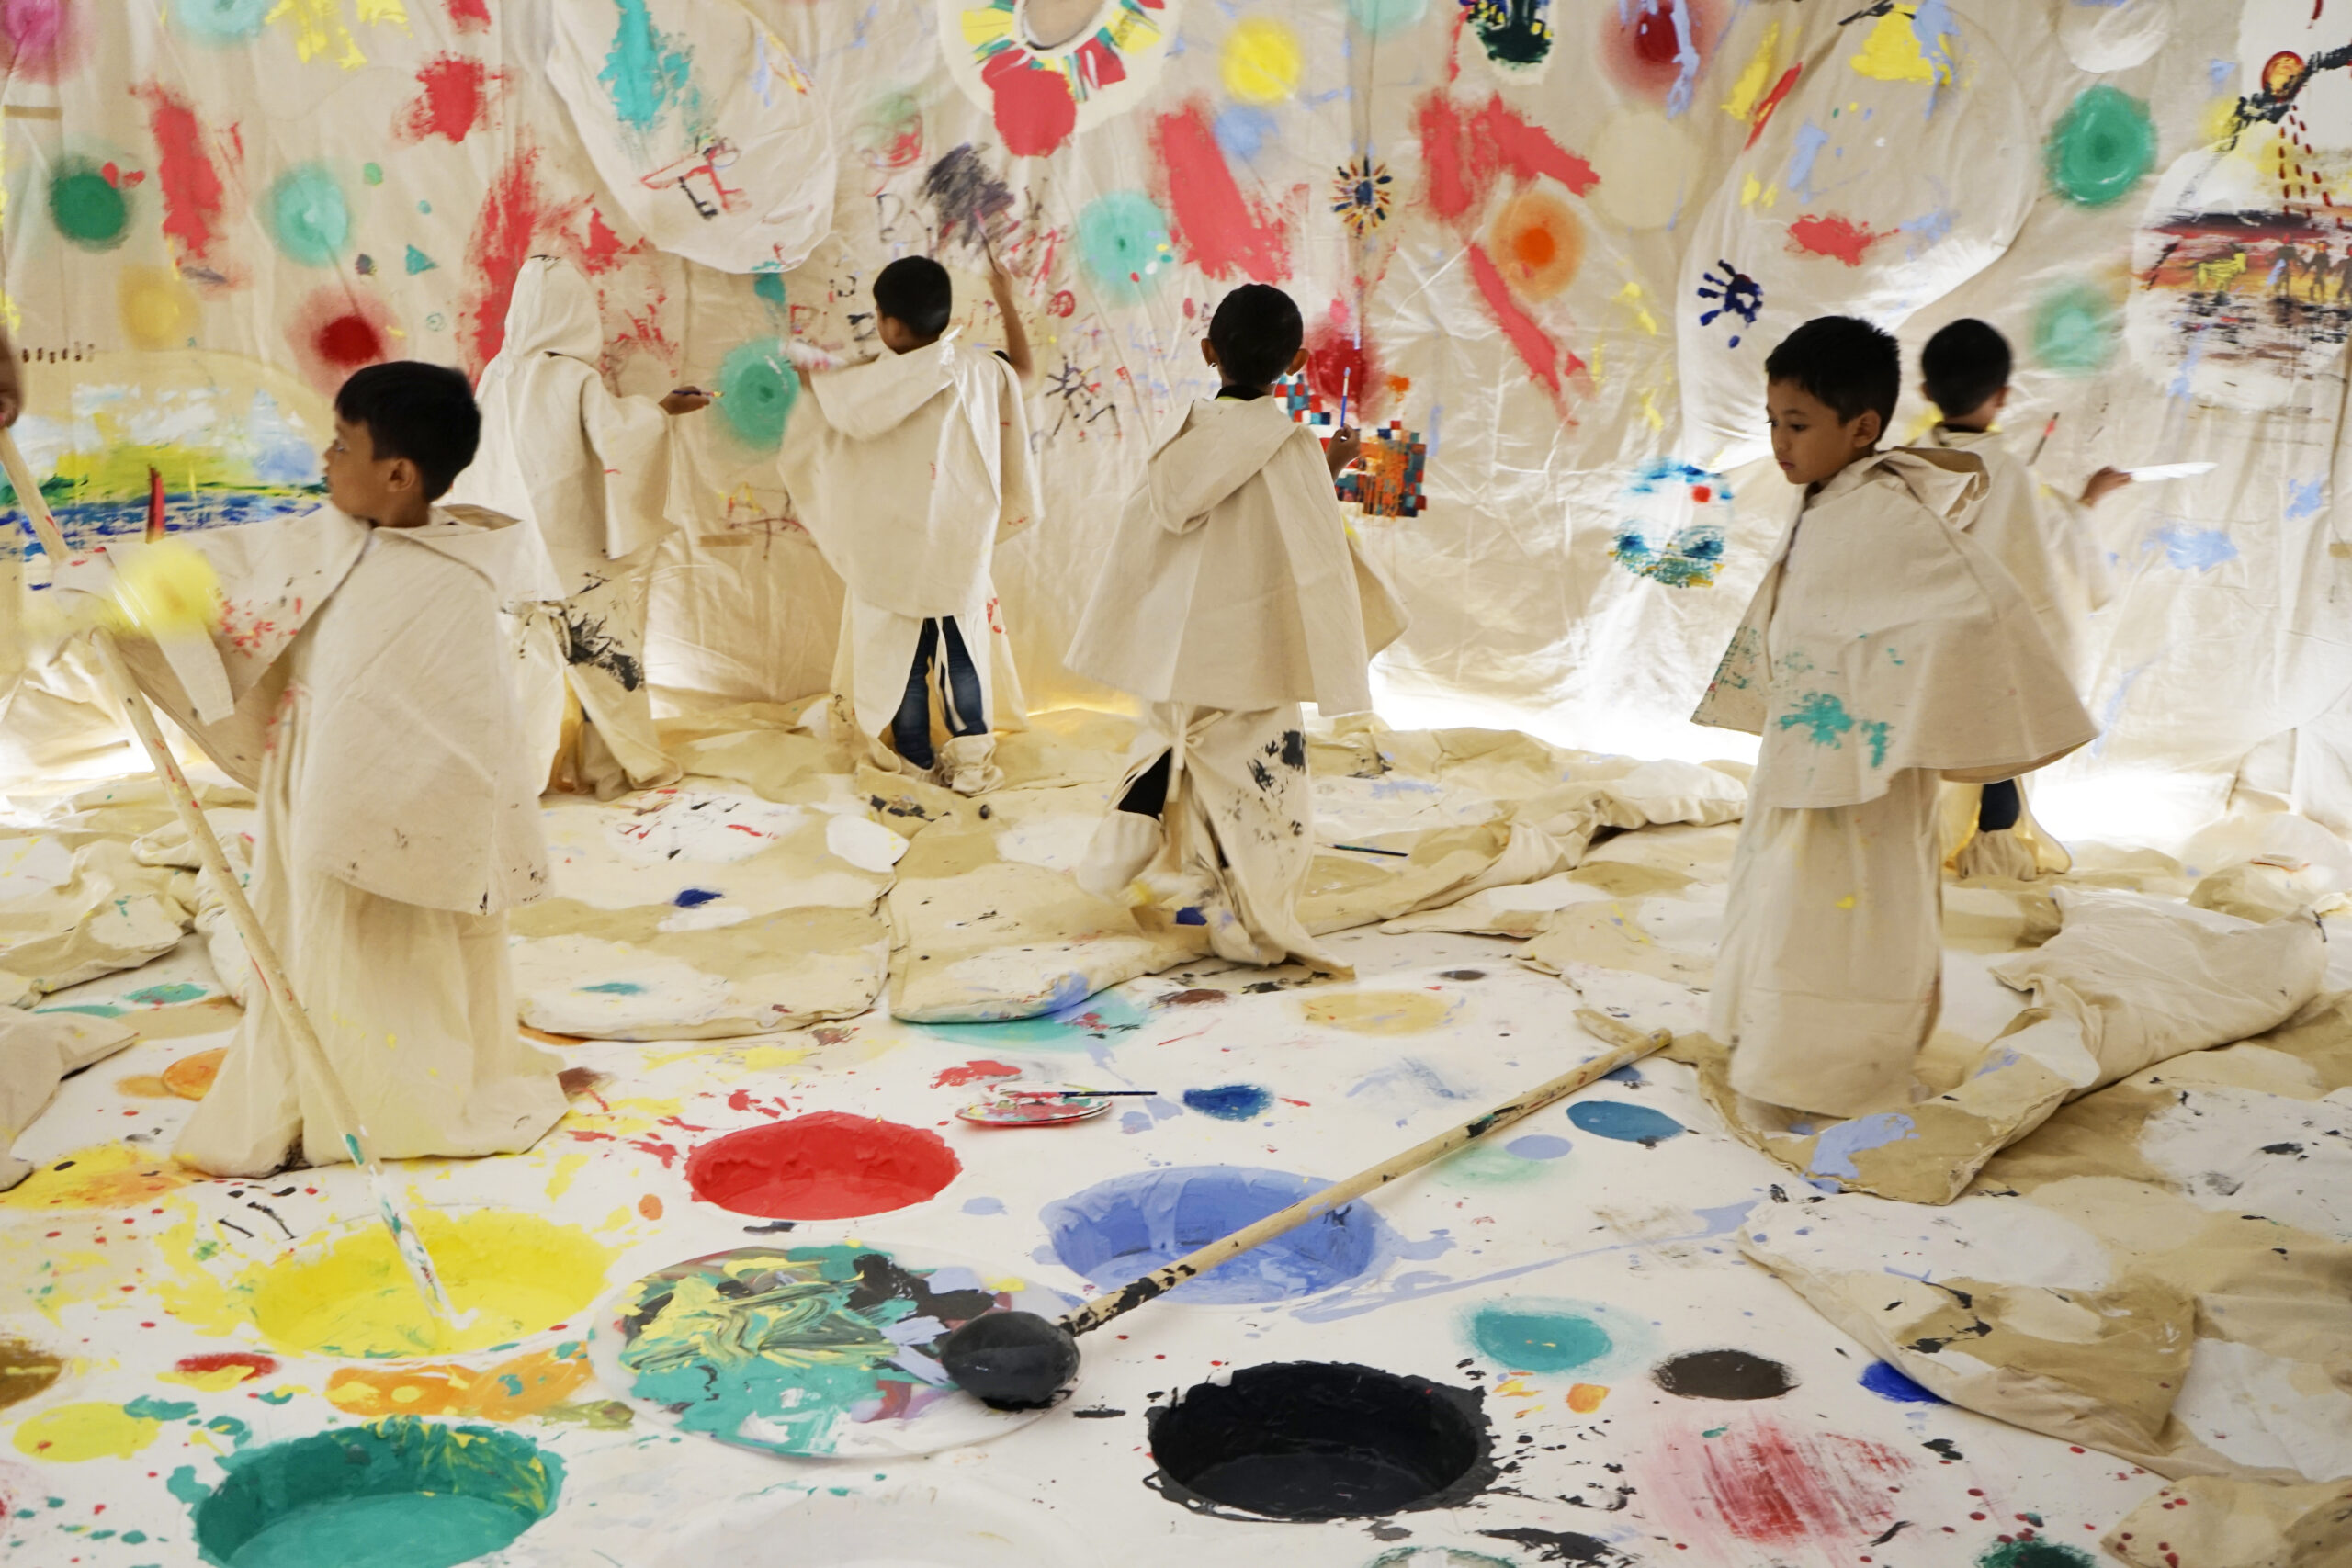 Museum MACAN Children's Art Space Commission - Color in Cave by Mit Jai Inn